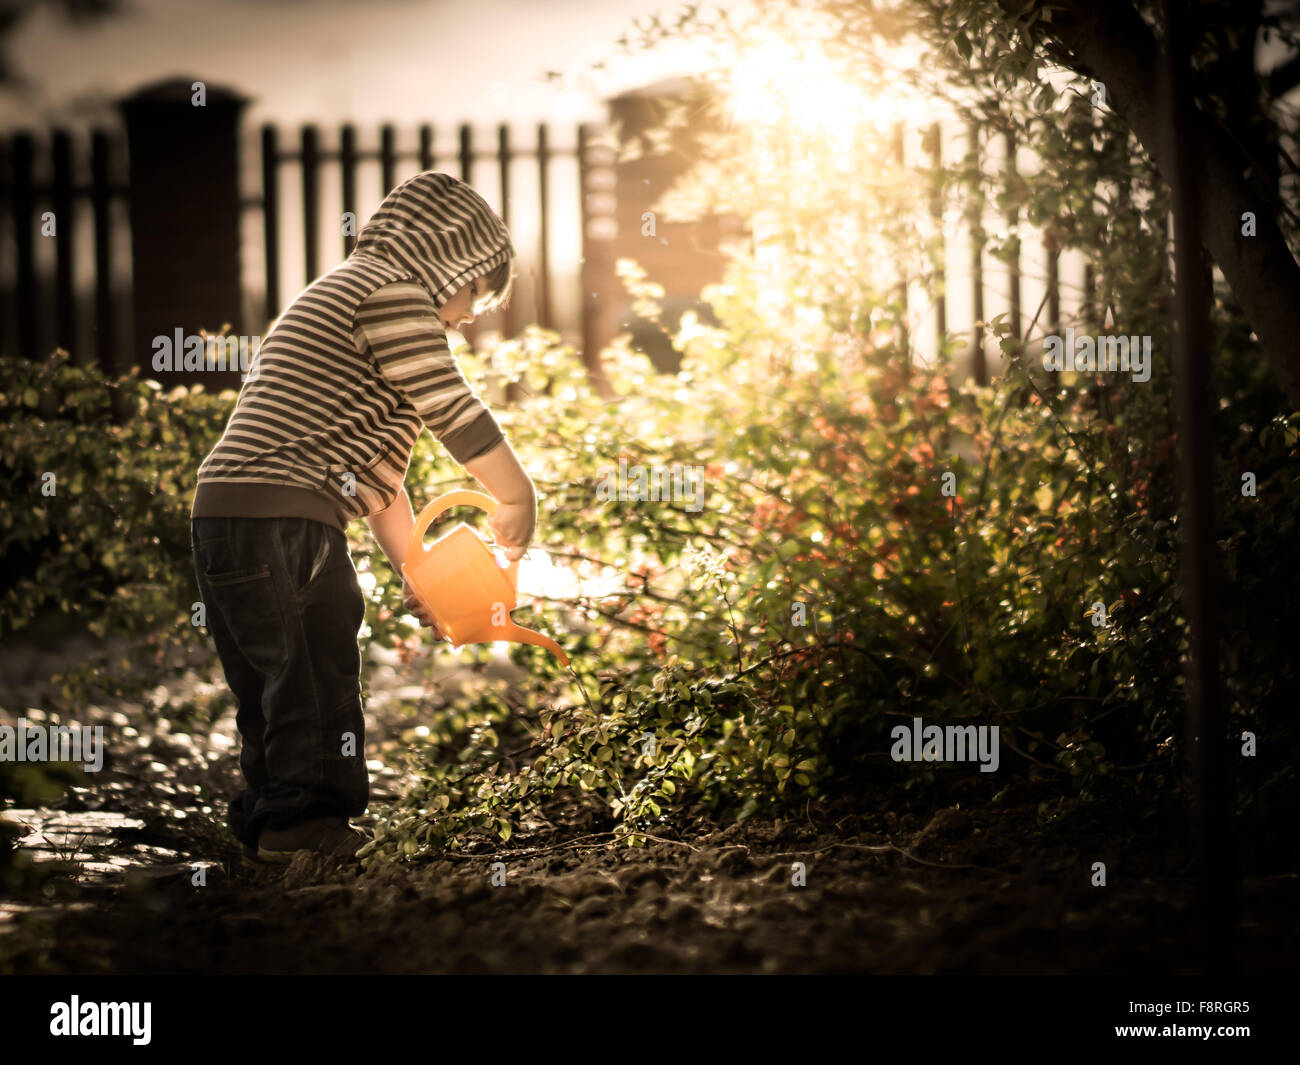 Boy watering plants in a garden - Stock Image